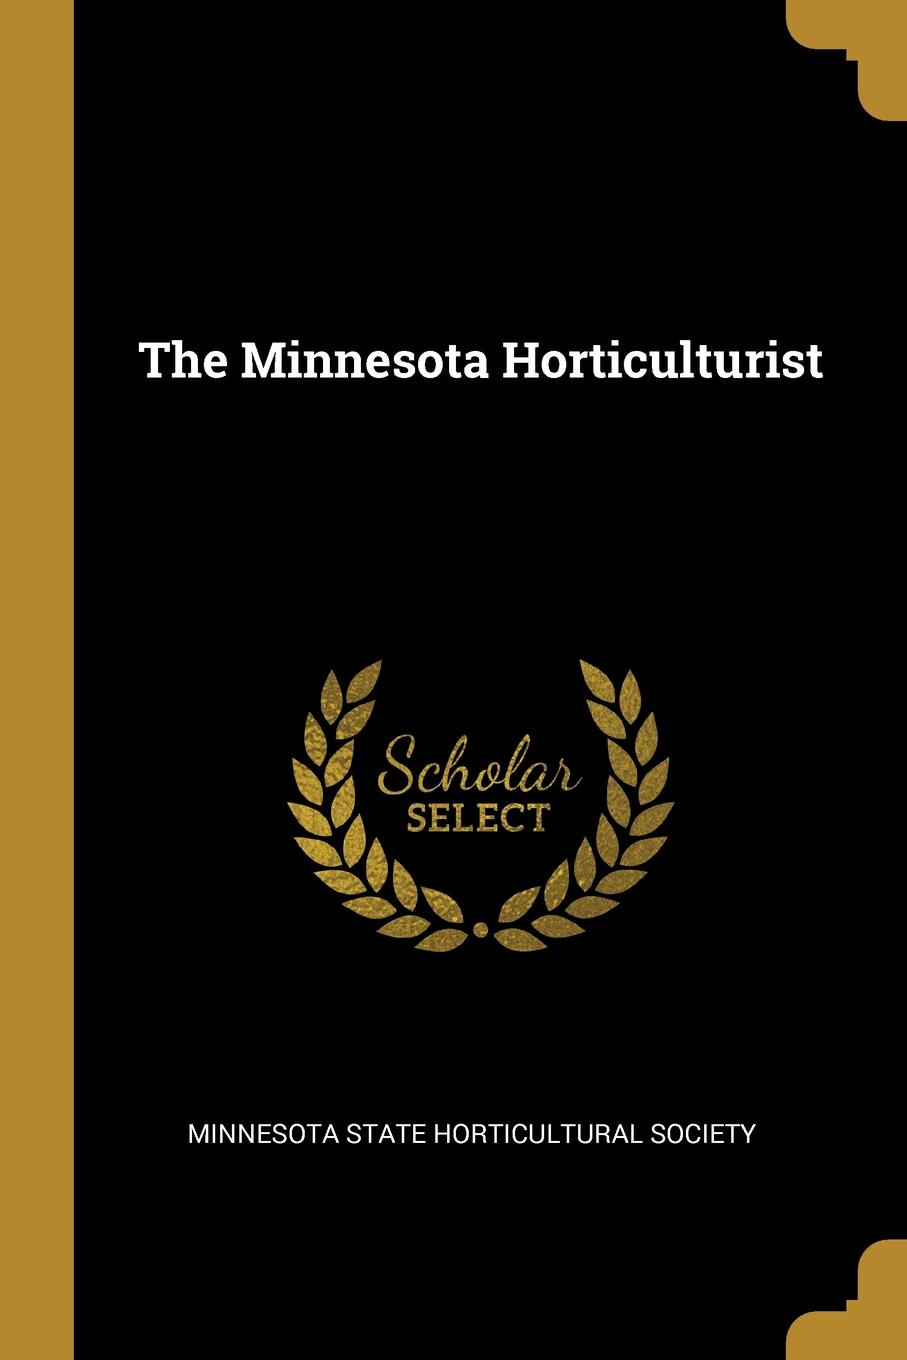 Minnesota State Horticultural Society The Minnesota Horticulturist